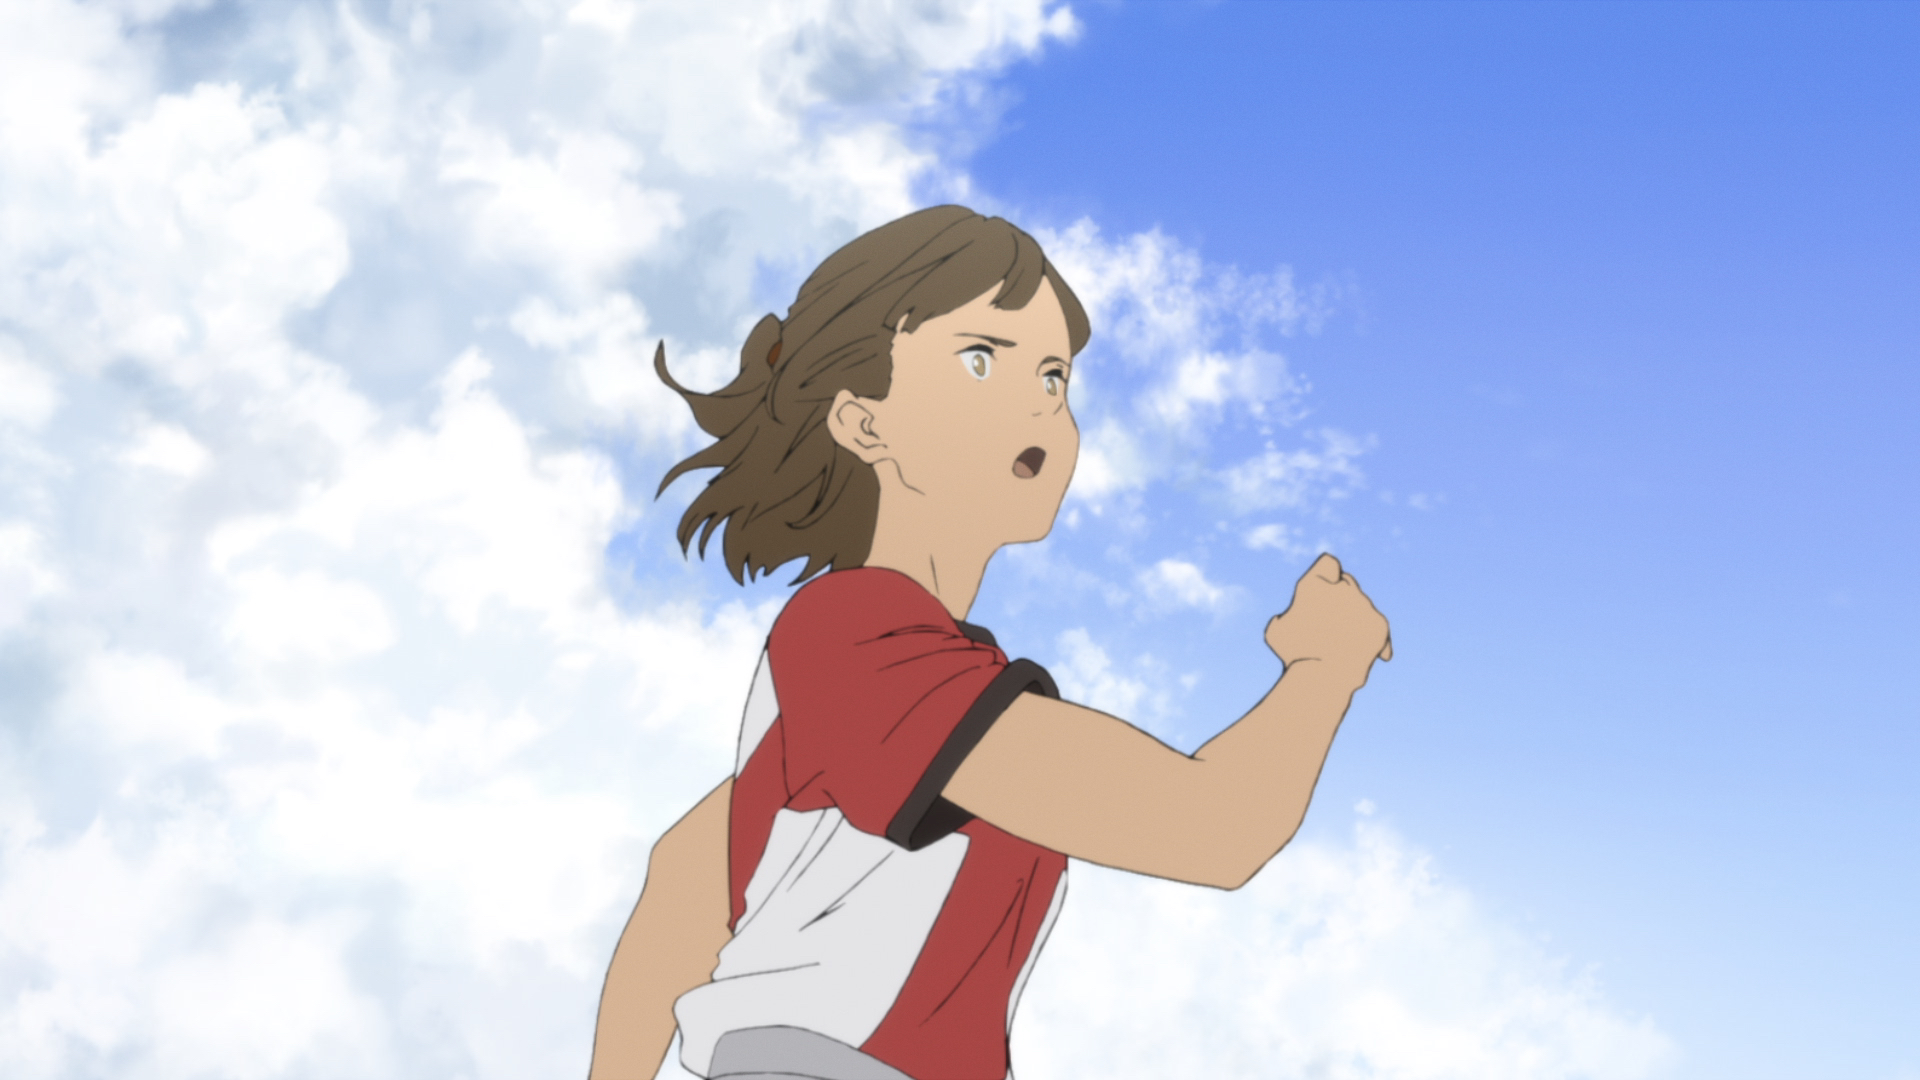 Masaaki Yuasa's 'Japan Sinks' Is a Disaster Anime Holding Too Much Back